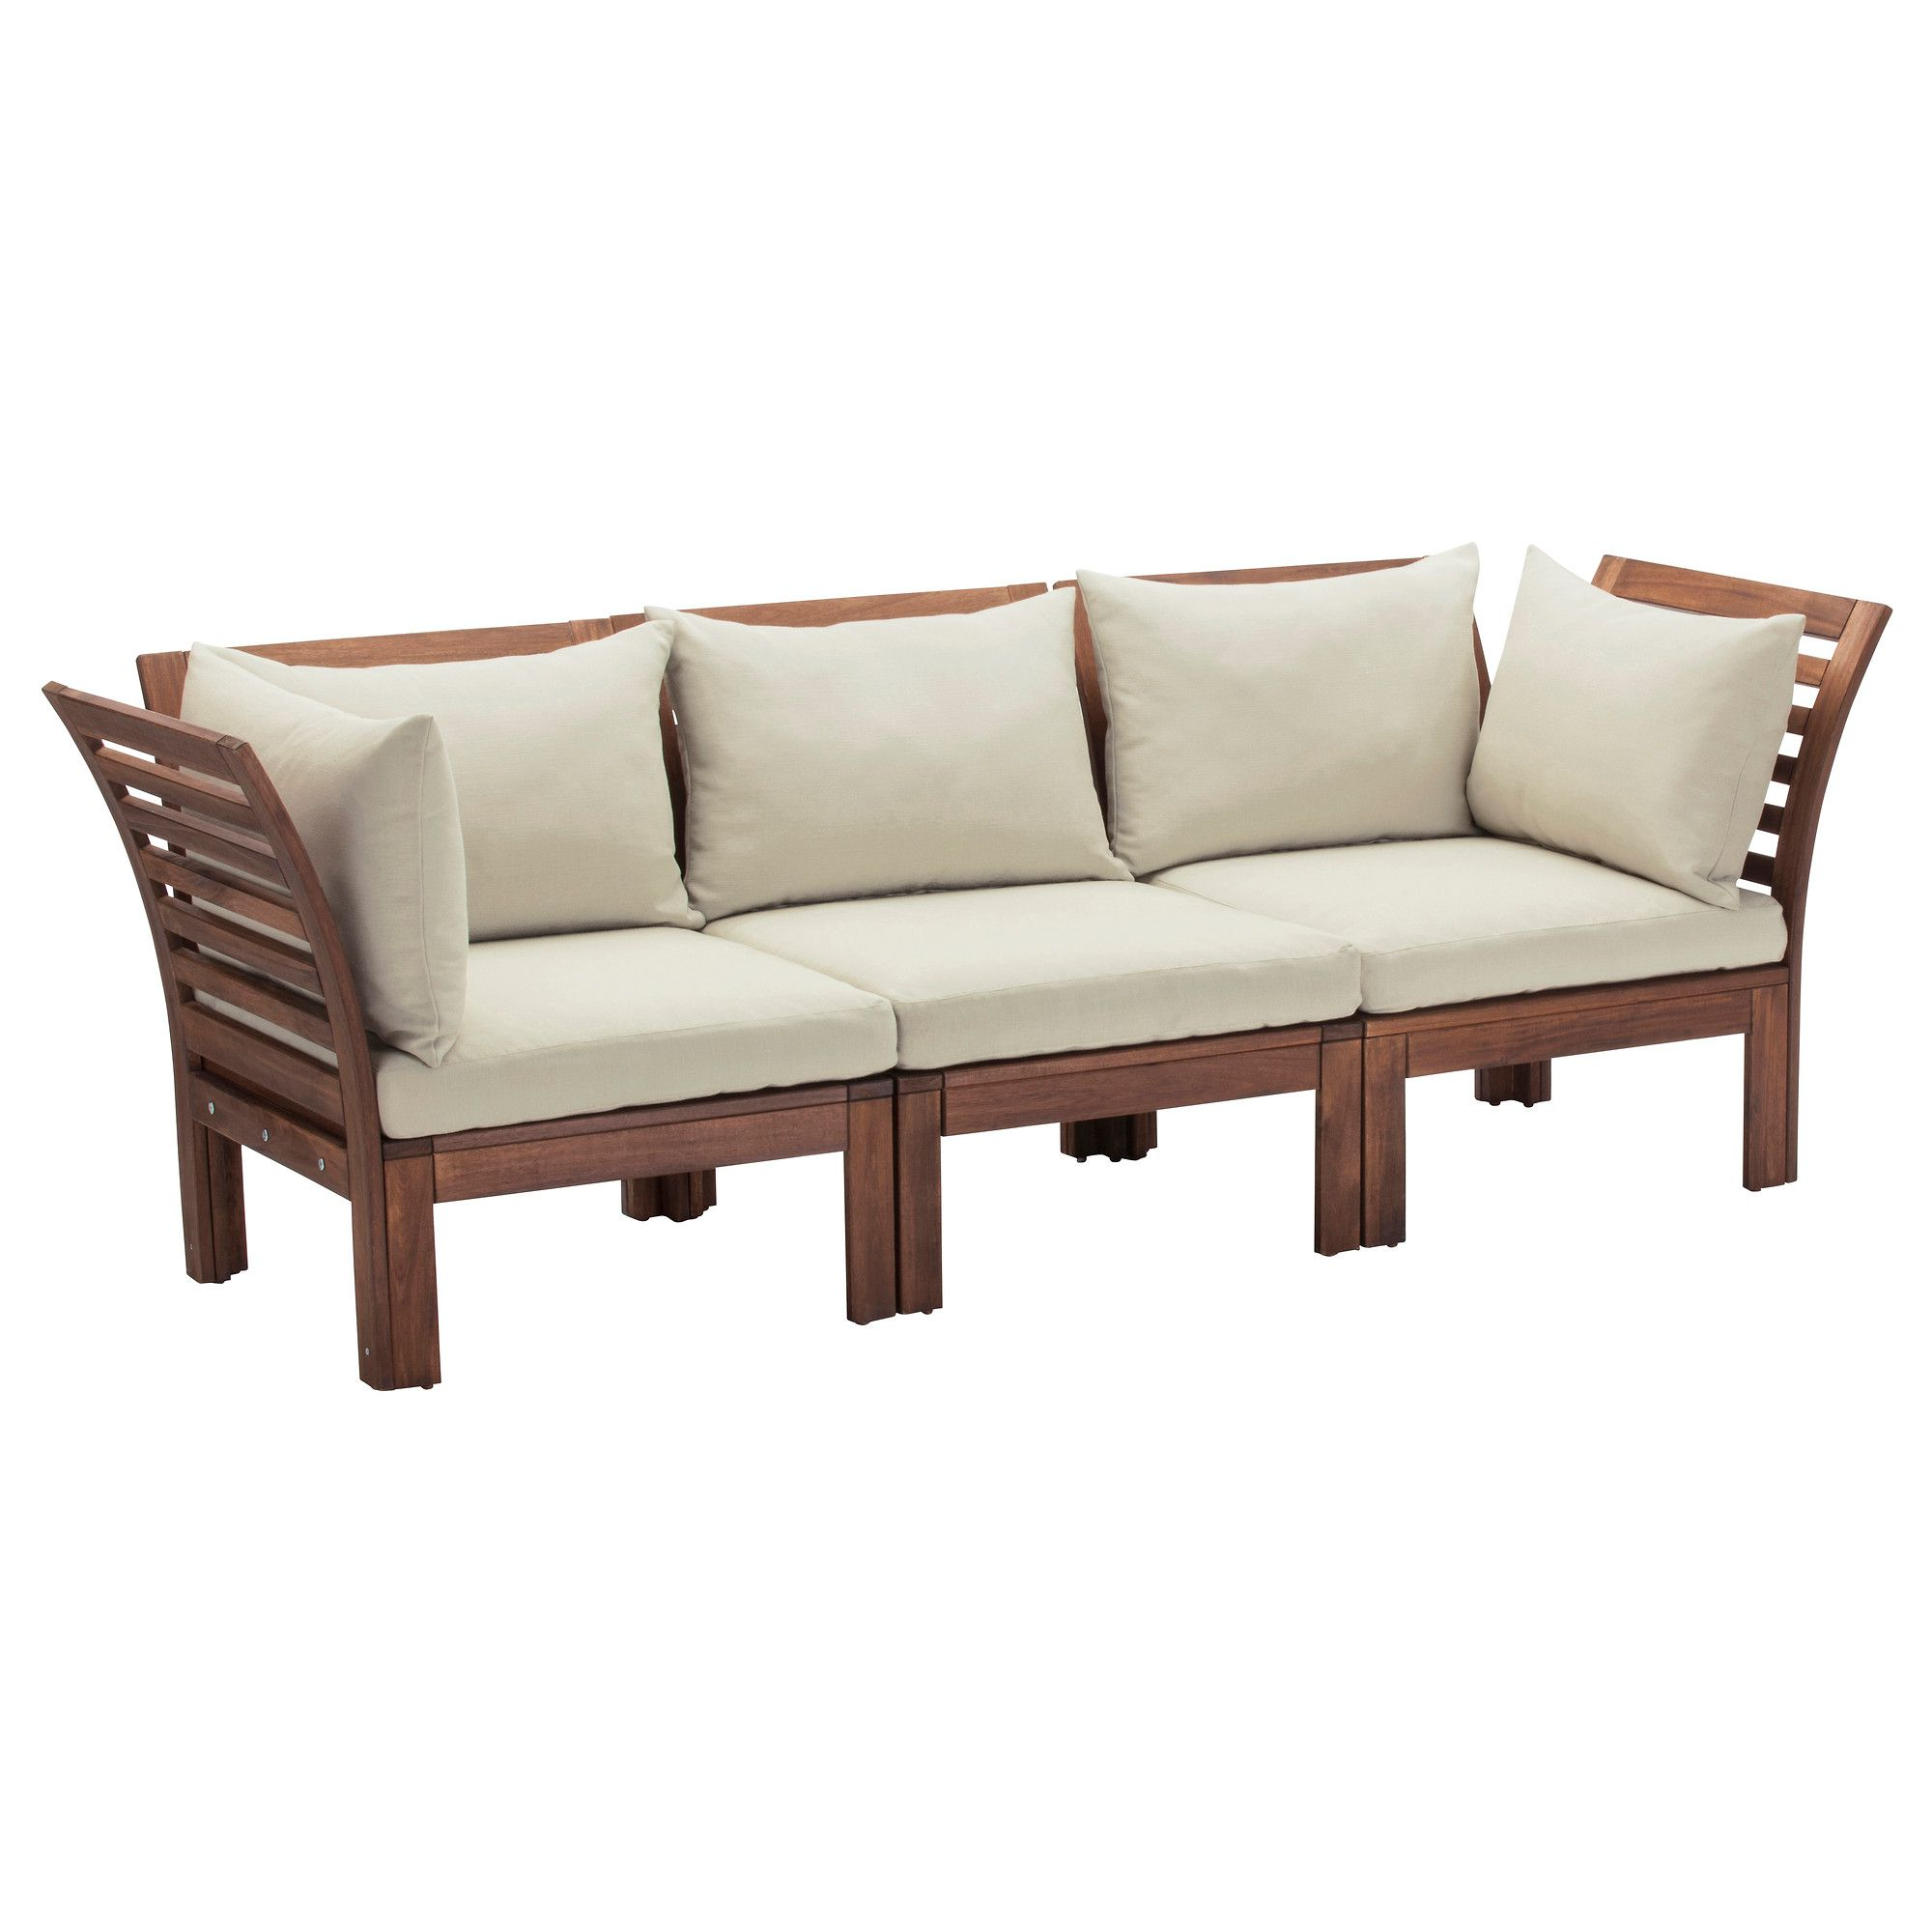 2020 Jamilla Teak Patio Sofas With Cushion In Äpplarö 3 Seat Modular Sofa, Outdoor – Brown Brown Stained (Gallery 12 of 25)